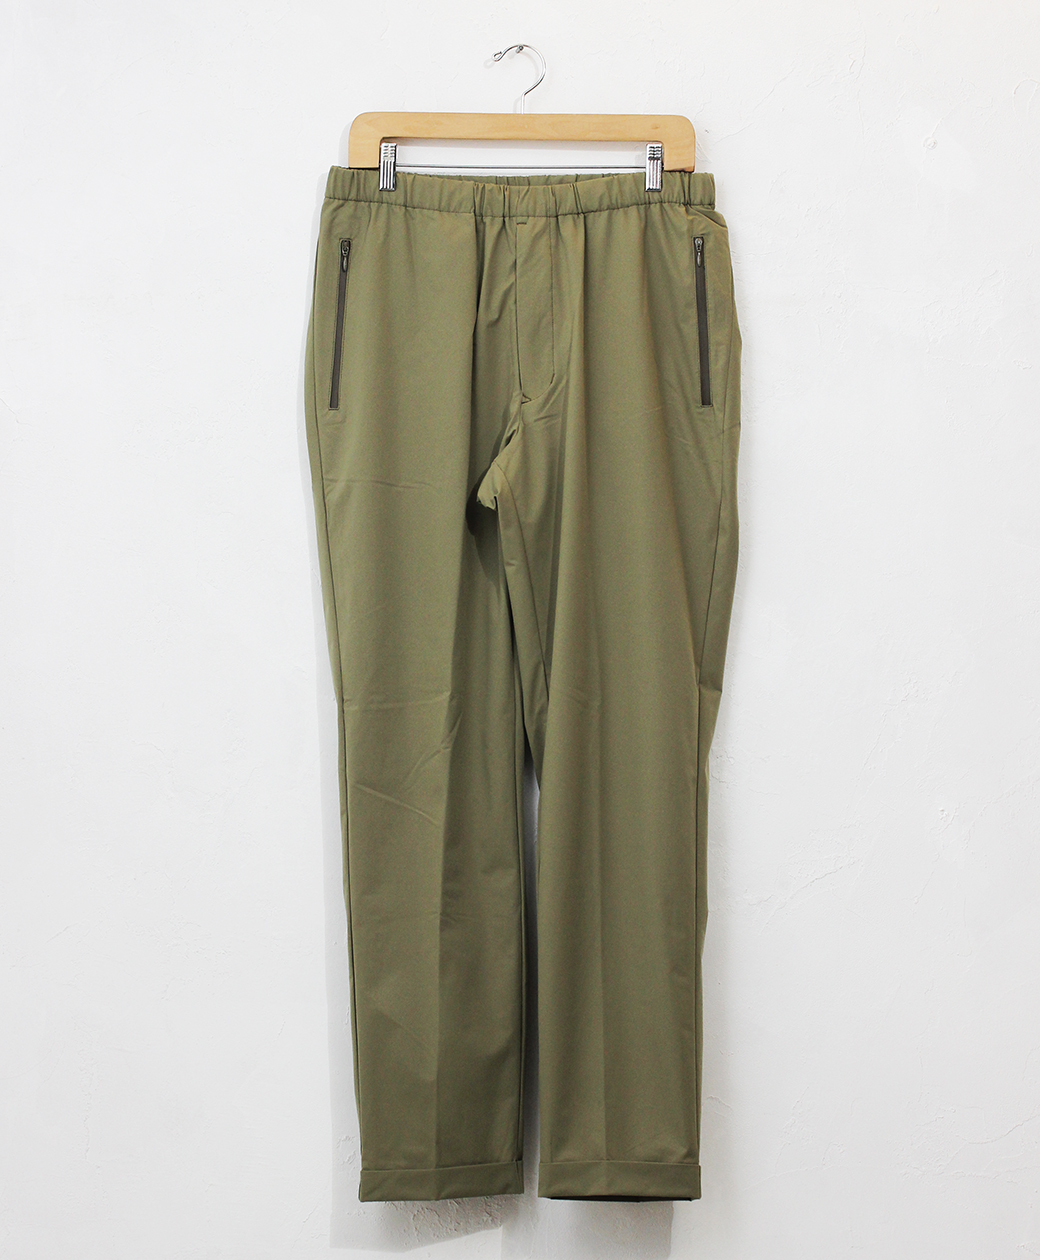 DESCENTE 2020 SPRING&SUMMER SALE PACKABLE PANTS(SKHK)